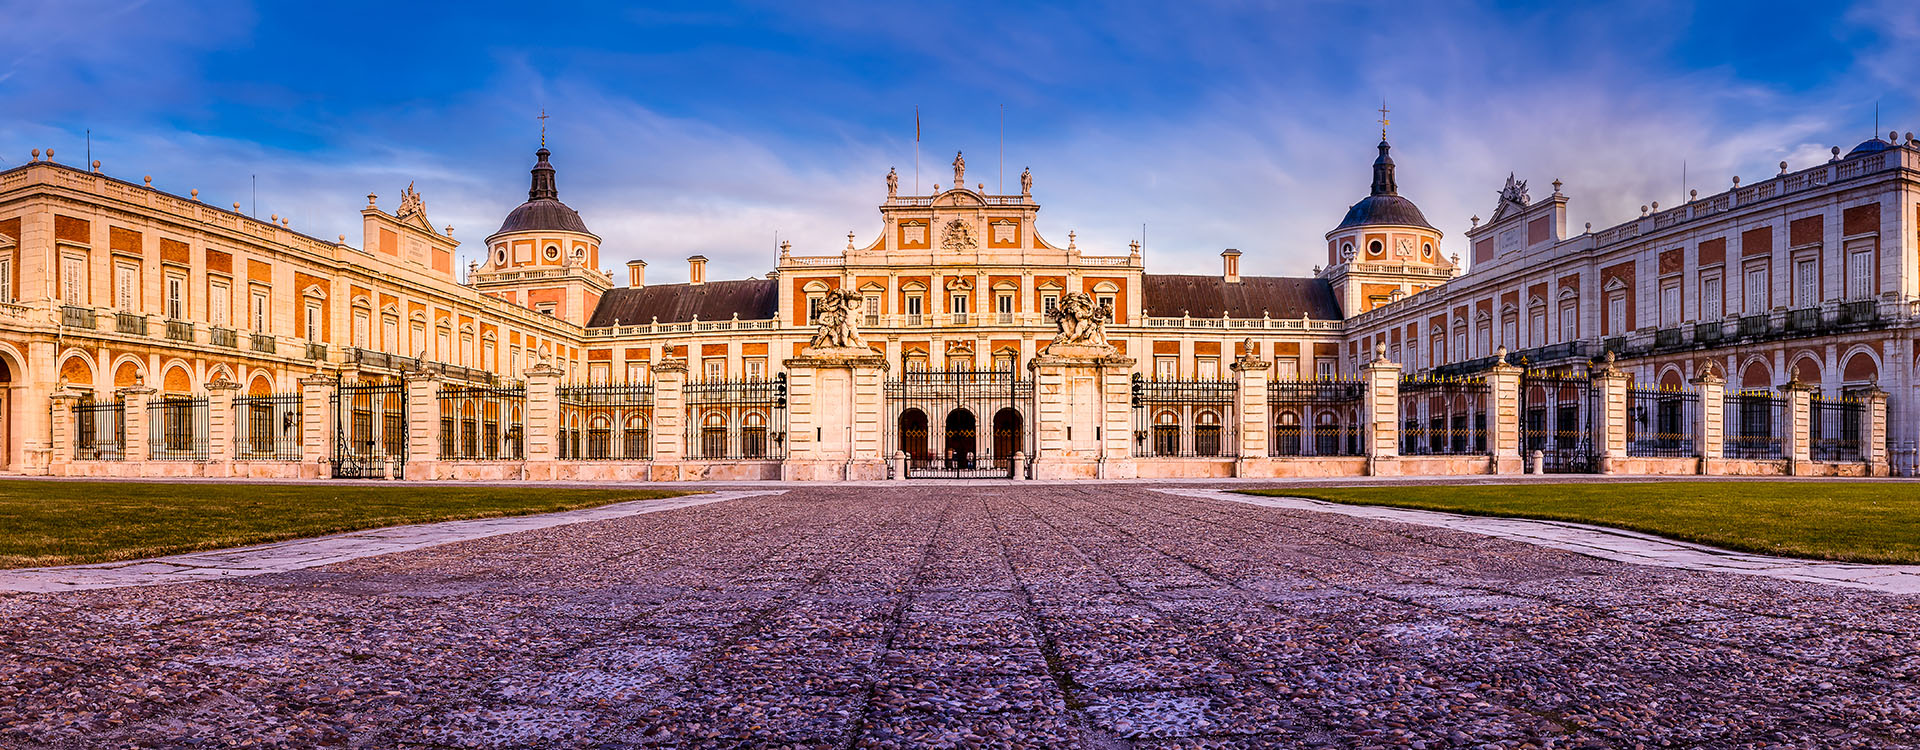 Aranjuez Royal Palace, Madrid, Spain